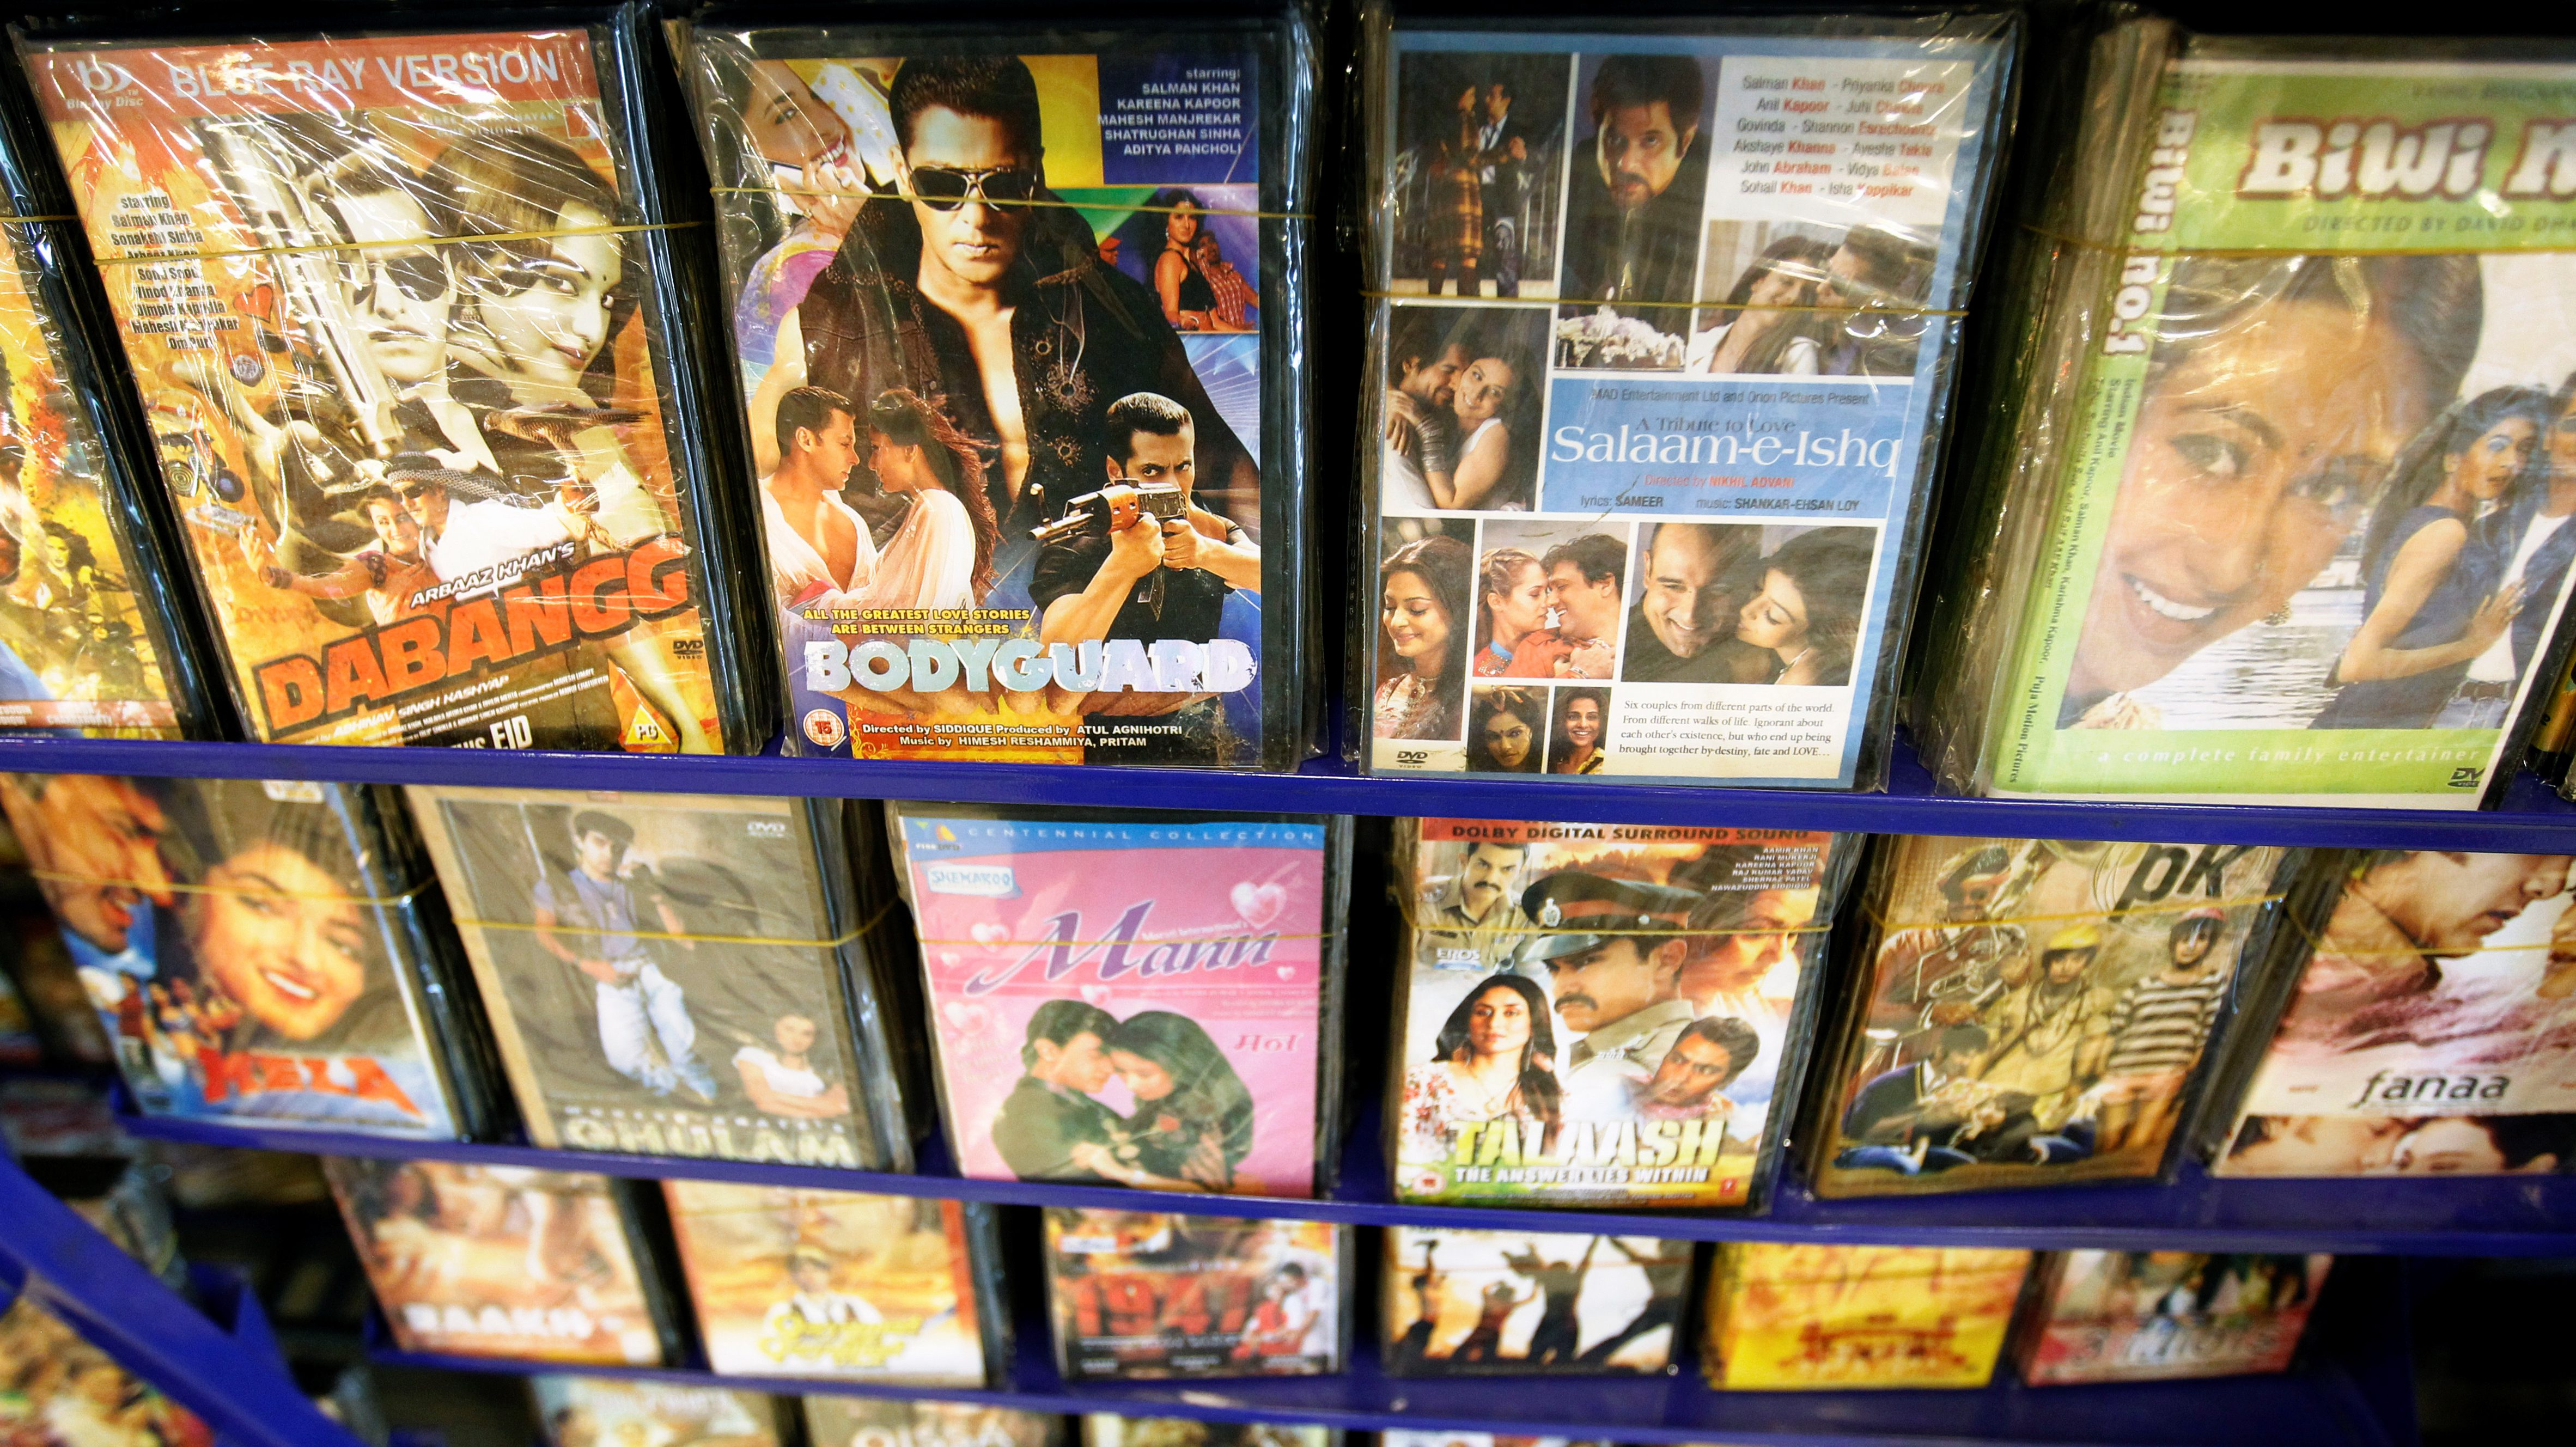 Bollywood movies are seen on display at a video store in Islamabad, Pakistan October 20, 2016. REUTERS/Caren Firouz - S1BEUIBADDAA